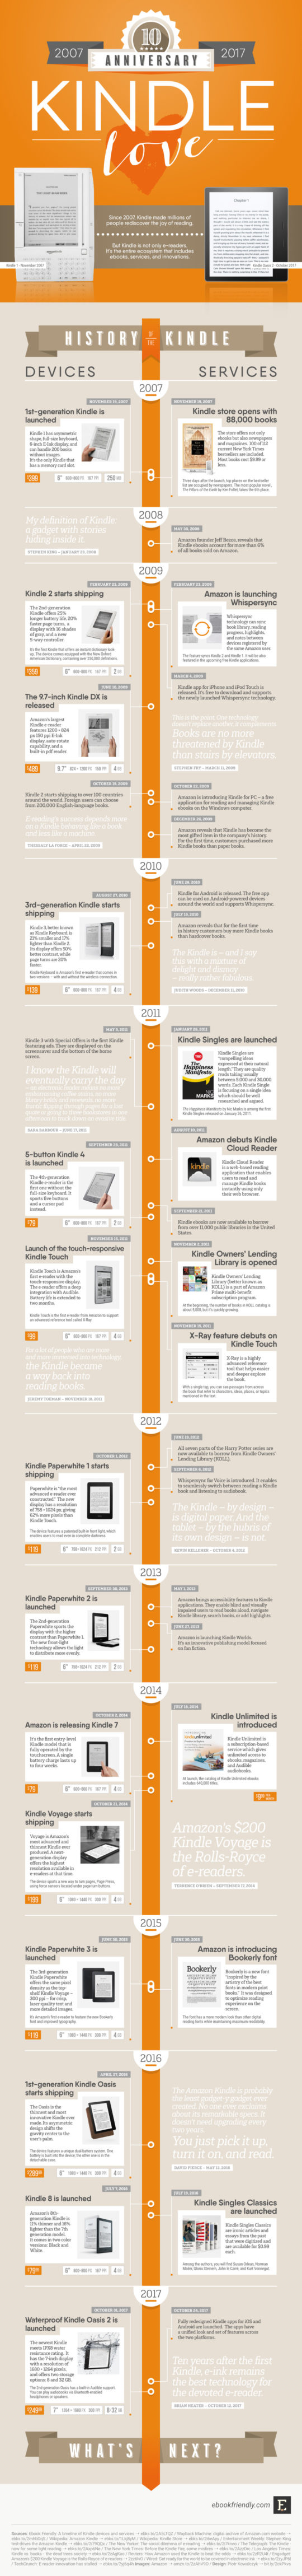 Celebrating 10 years of Kindle e-readers and services #infographic